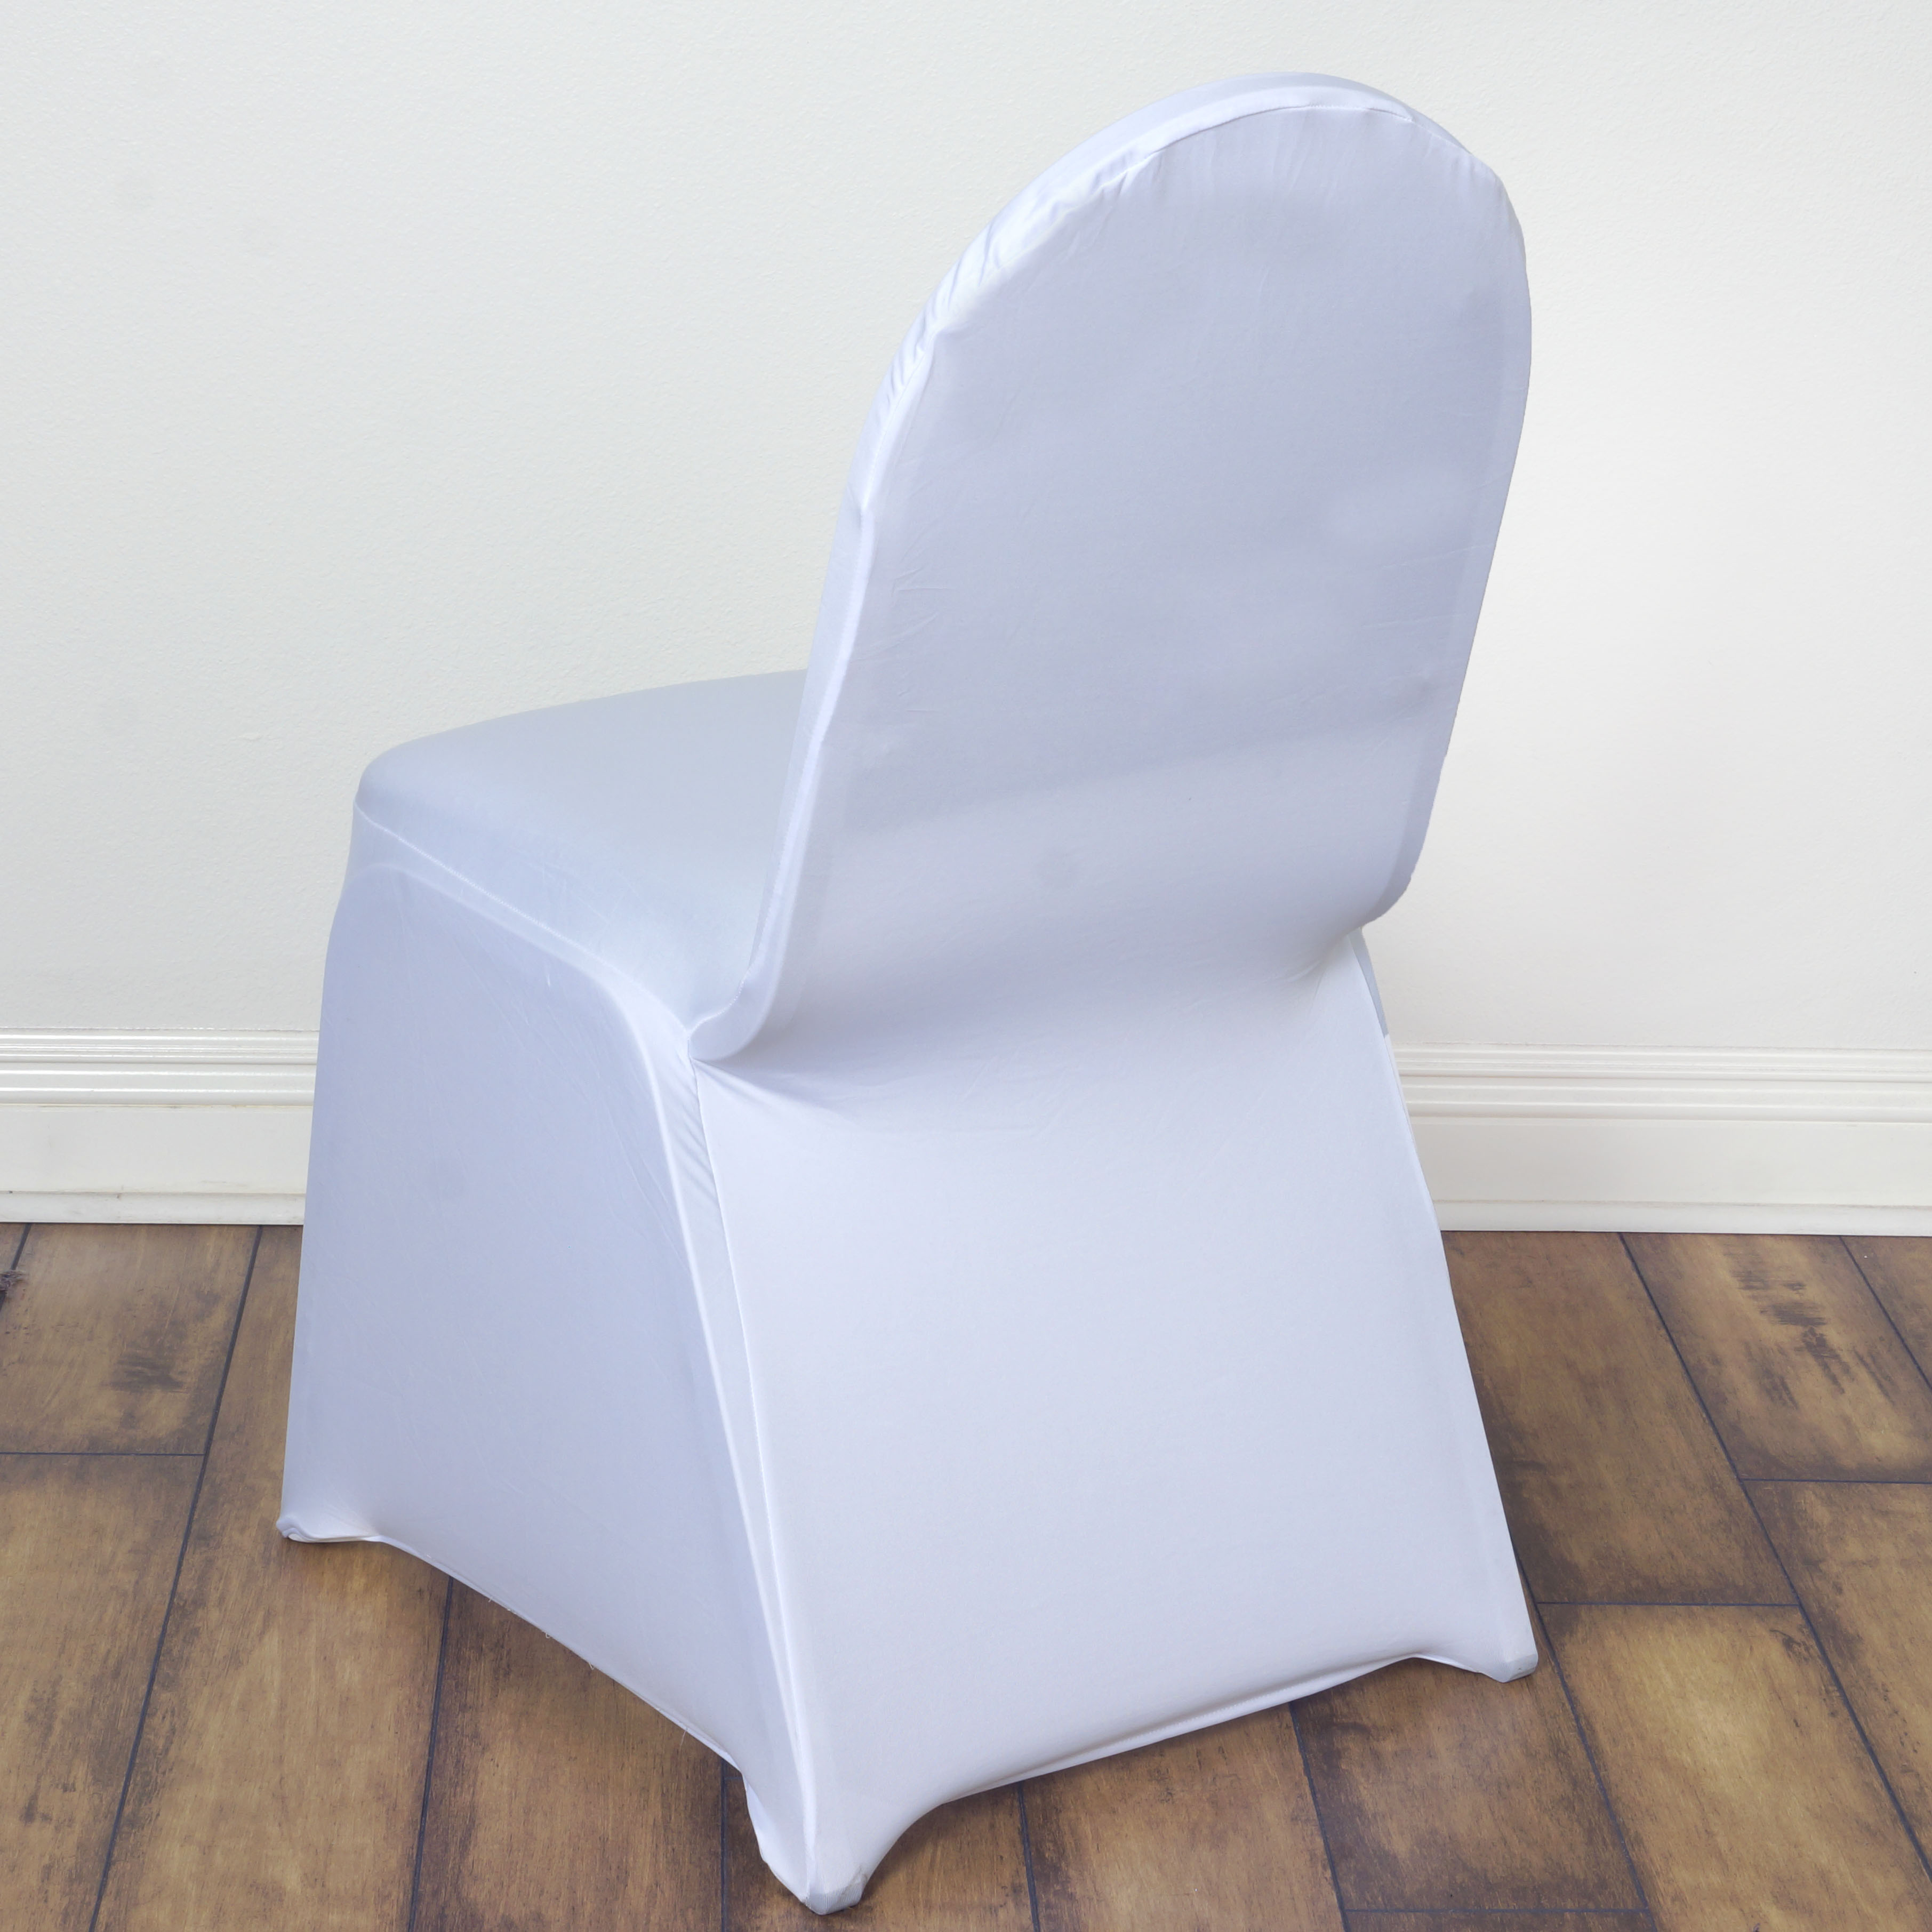 200 pcs spandex stretchable chair covers wholesale wedding party ceremony sale ebay